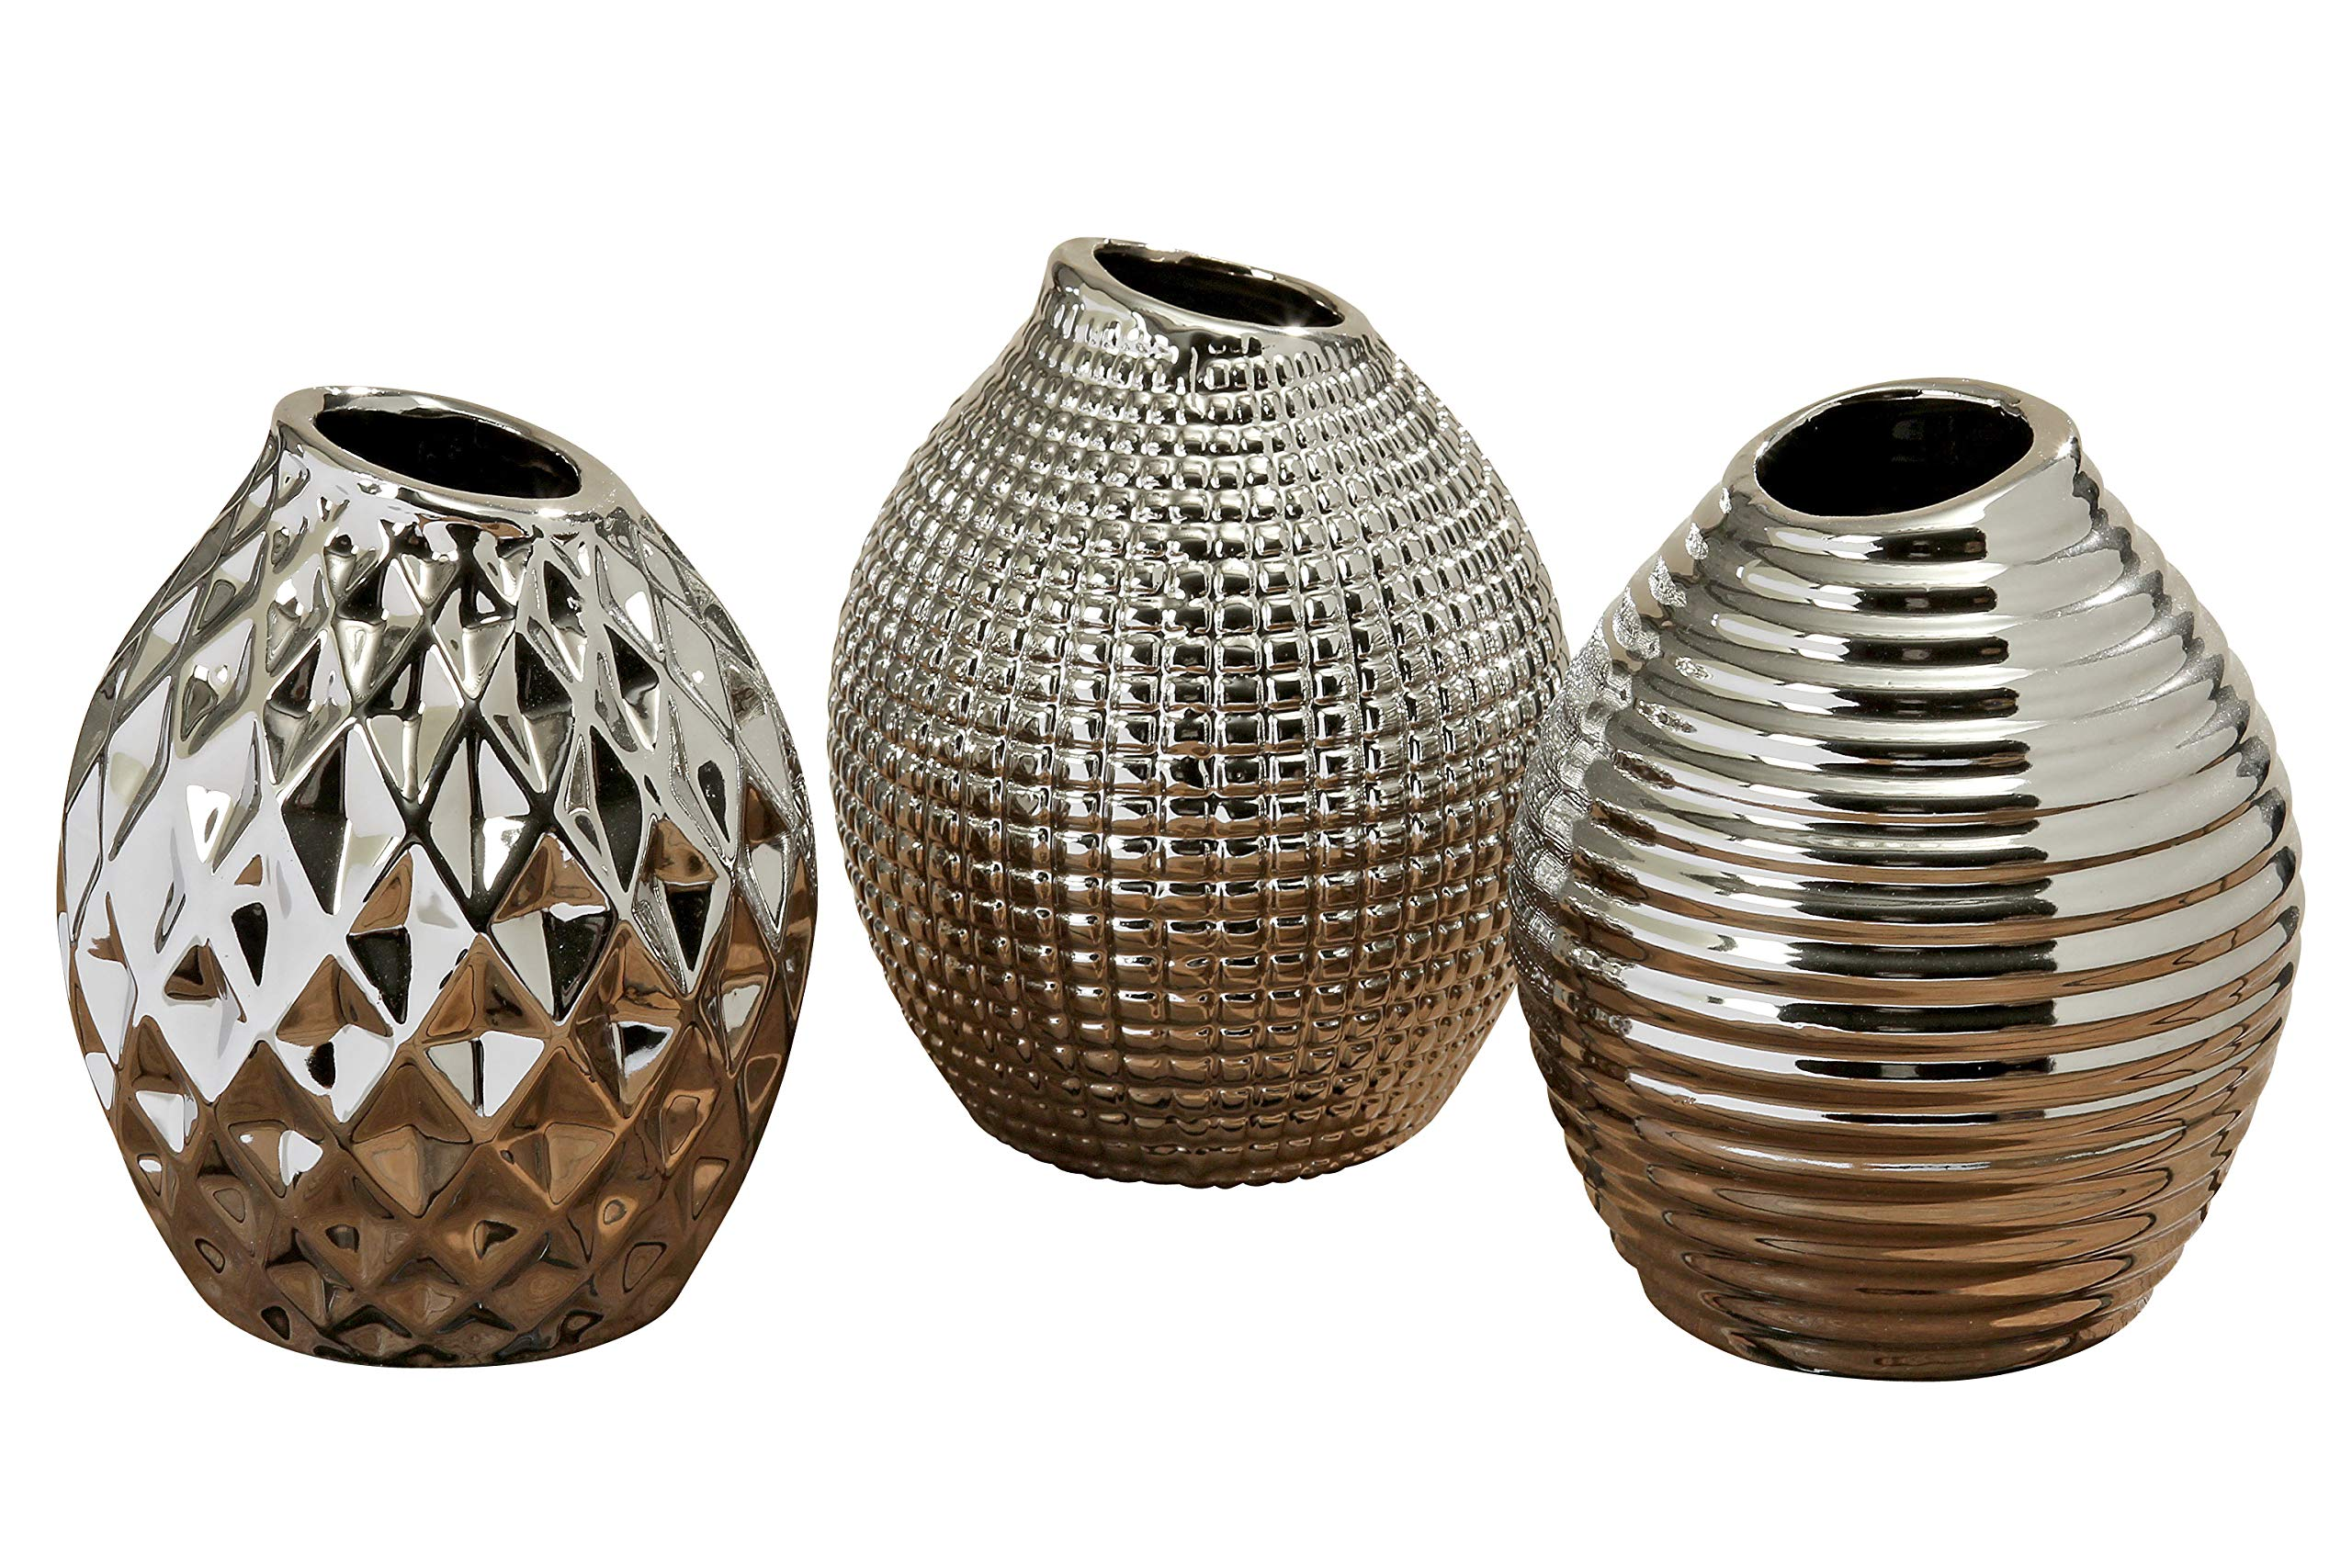 Whole House Worlds Iconic Scandinavian Style Vases, Set of 3, 1 Faceted, 1 Ringed and 1 Diamond Pattern, Silver Glazed Stoneware, Gourd Shaped, 5 1/8 Inches High, by WHW